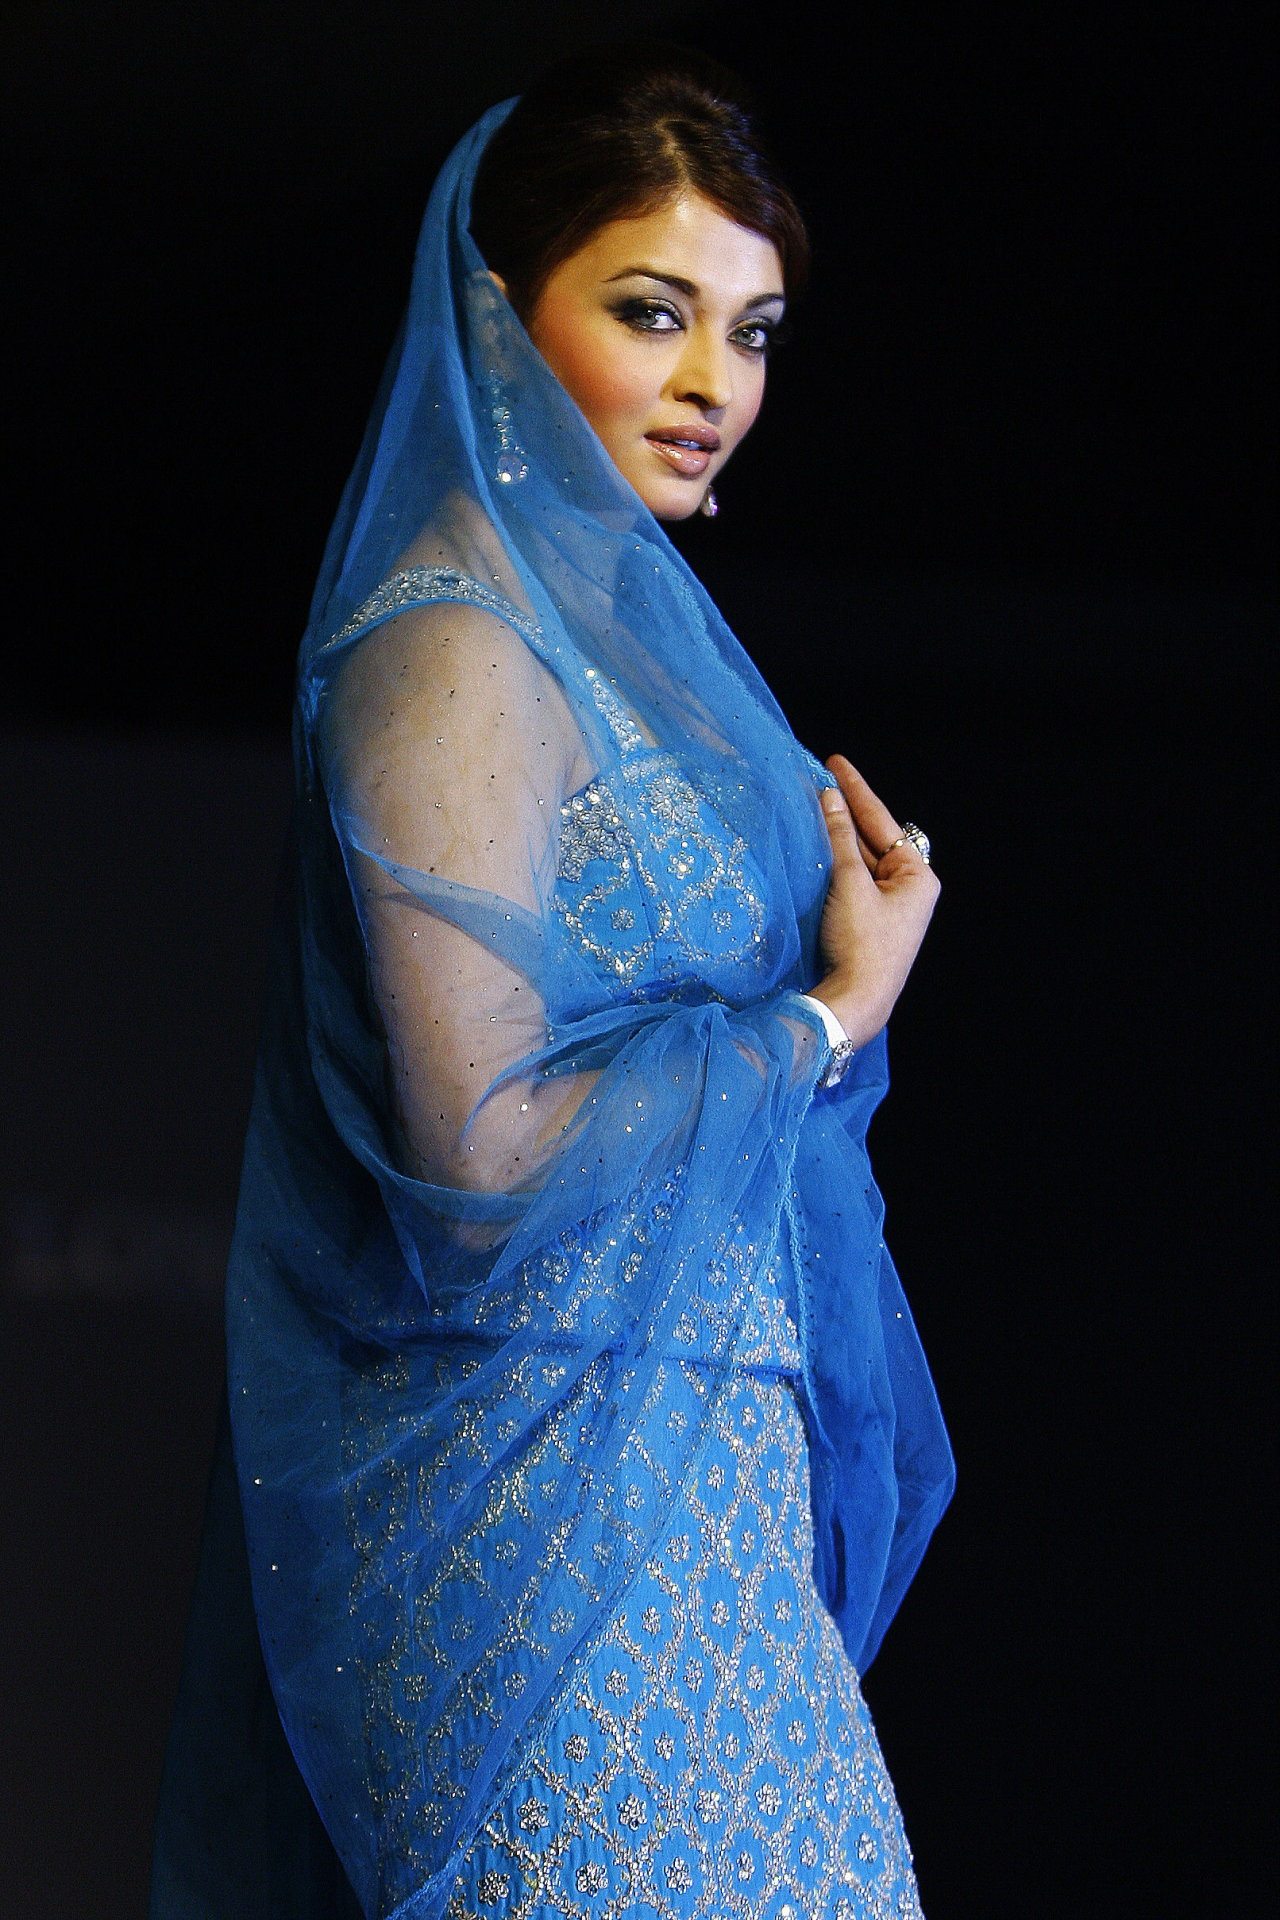 Aish rai pregnant pictures Iron Disorders Institute: Iron Out-of-Balance